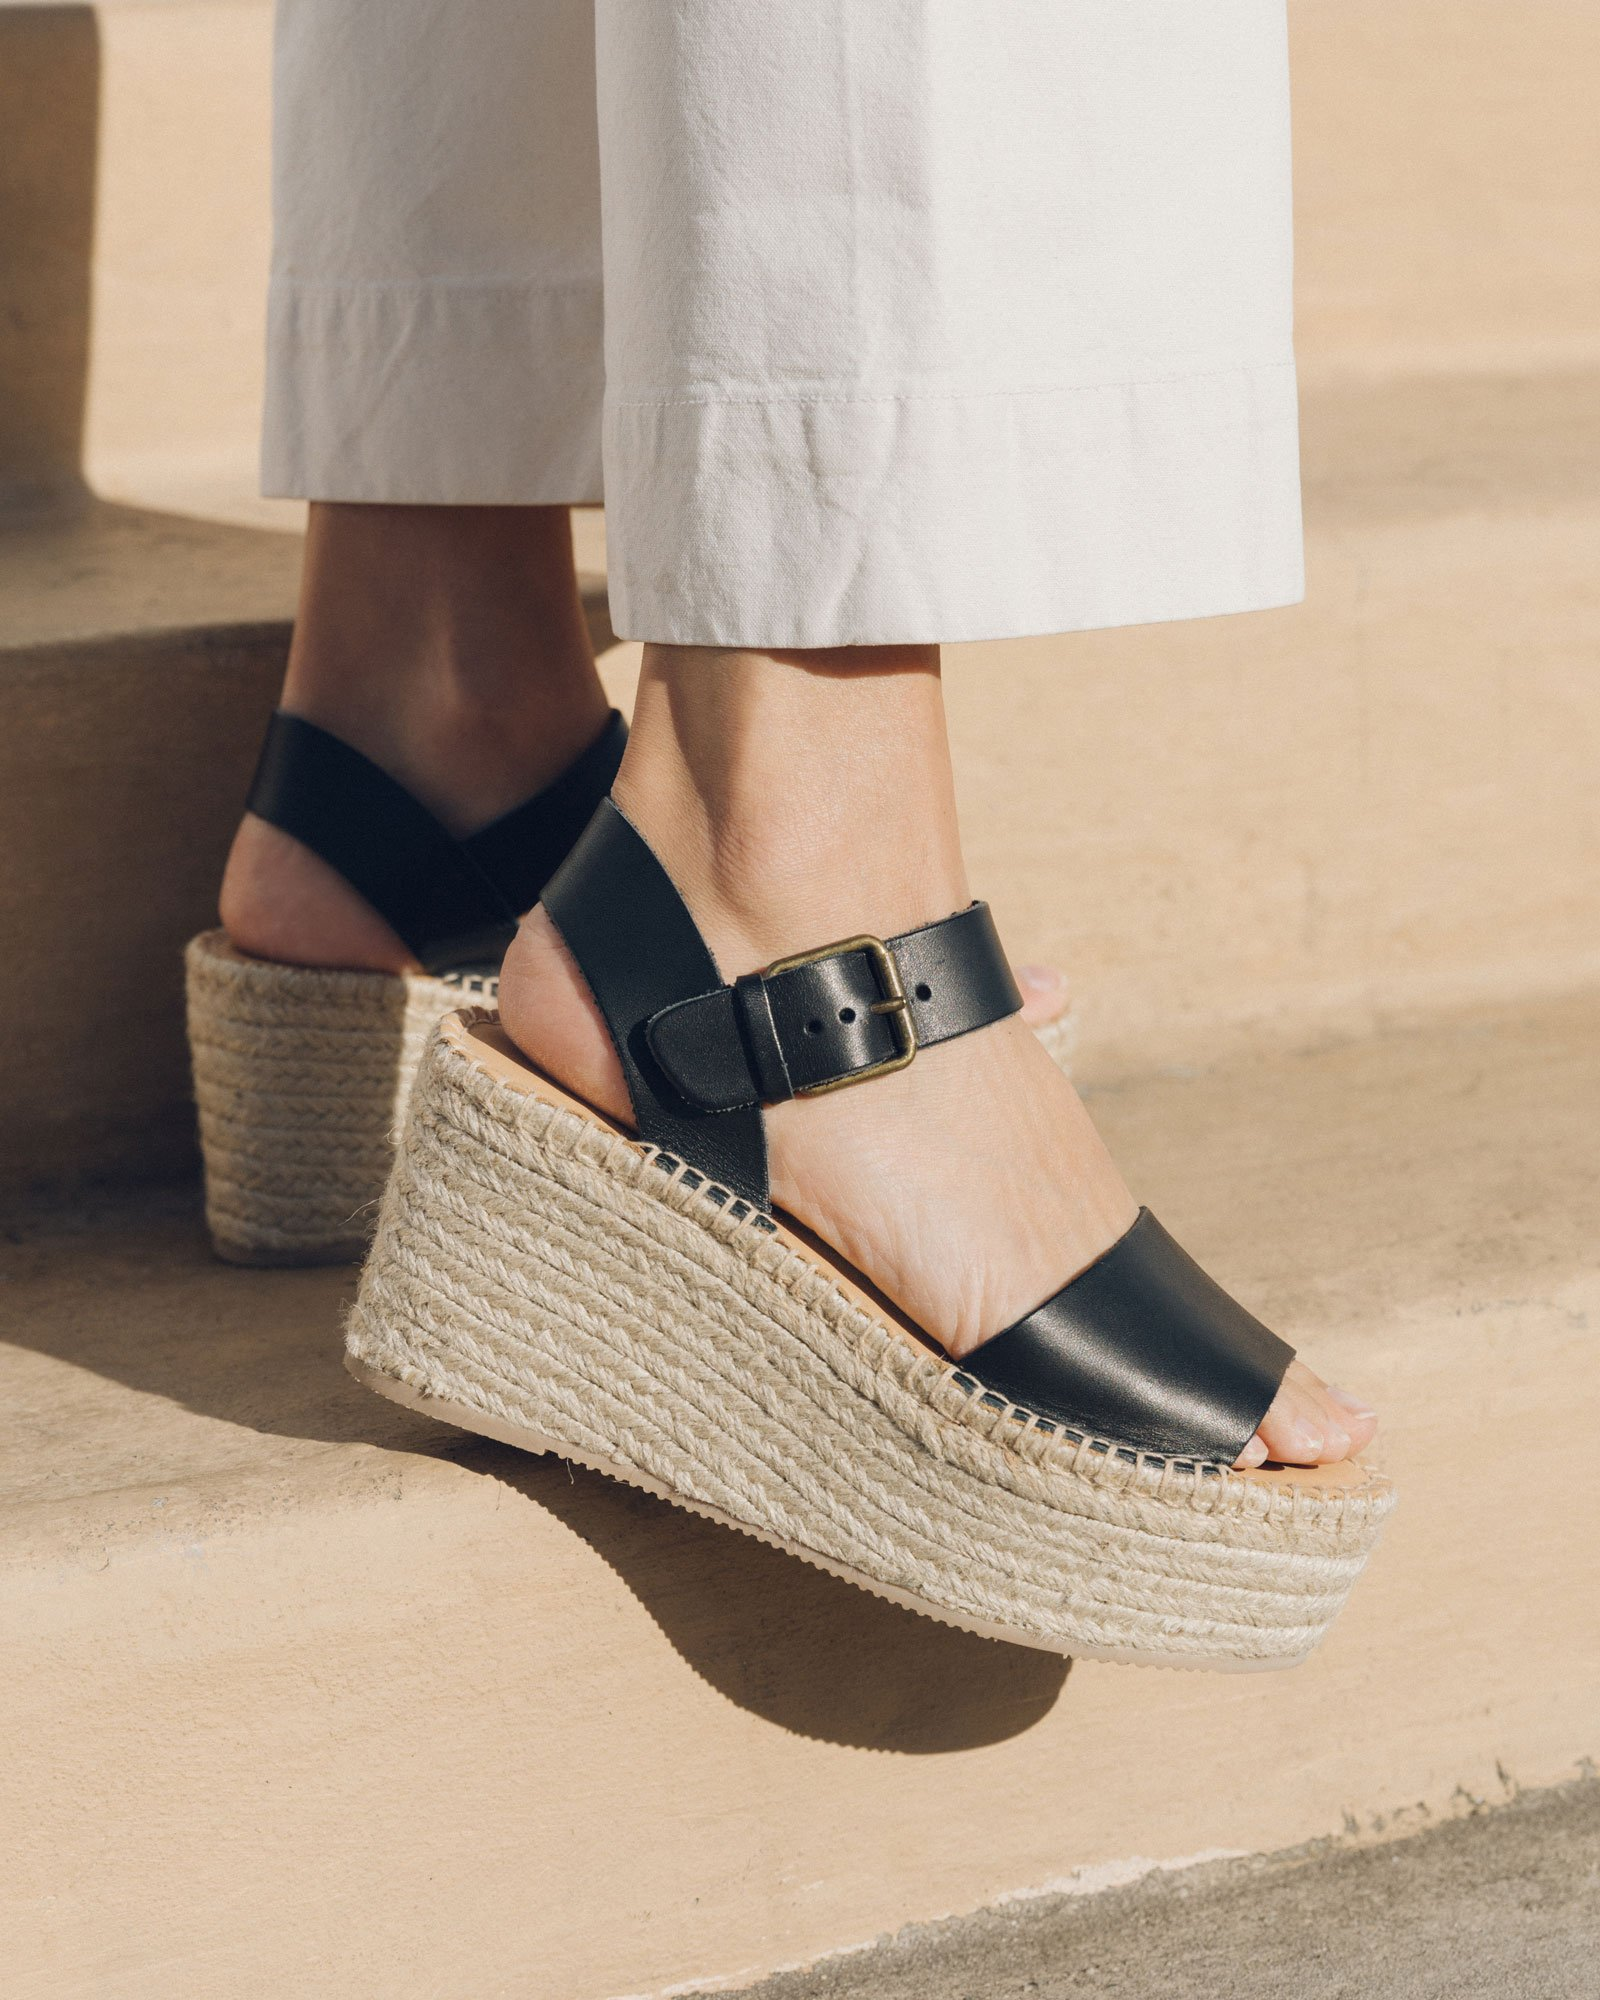 Black leather open-toe espadrille wedges from Soludos